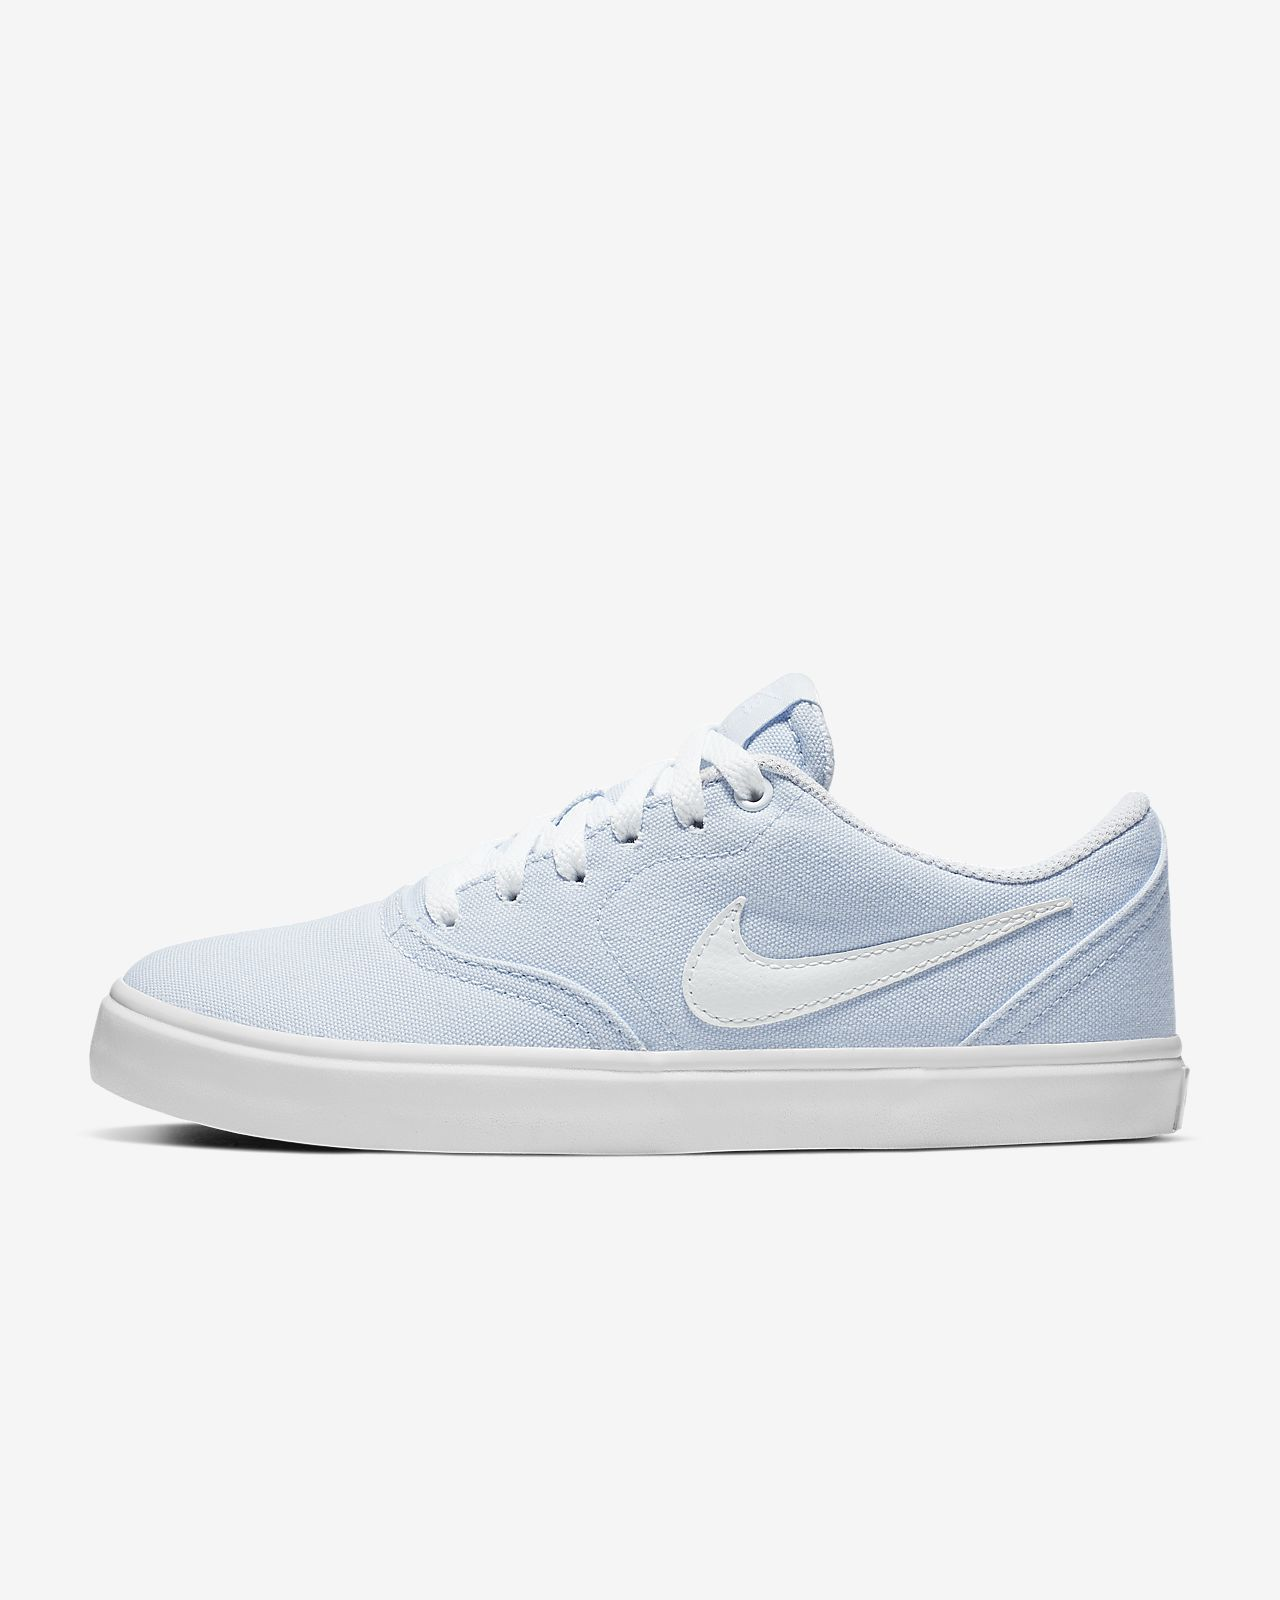 Skateboardsko Nike SB Check Solarsoft Canvas för kvinnor